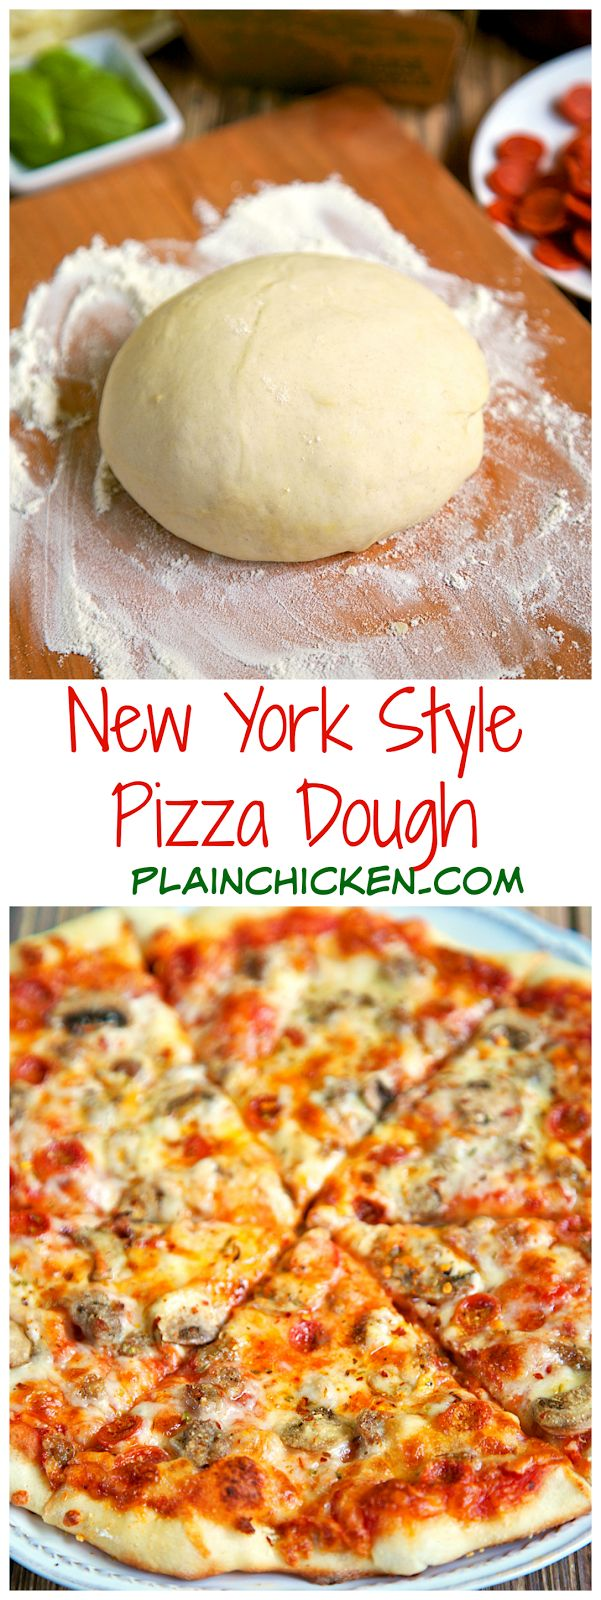 New York Style Pizza Dough - Only 4 ingredients to make the best pizza dough - this dough is so easy to work with!